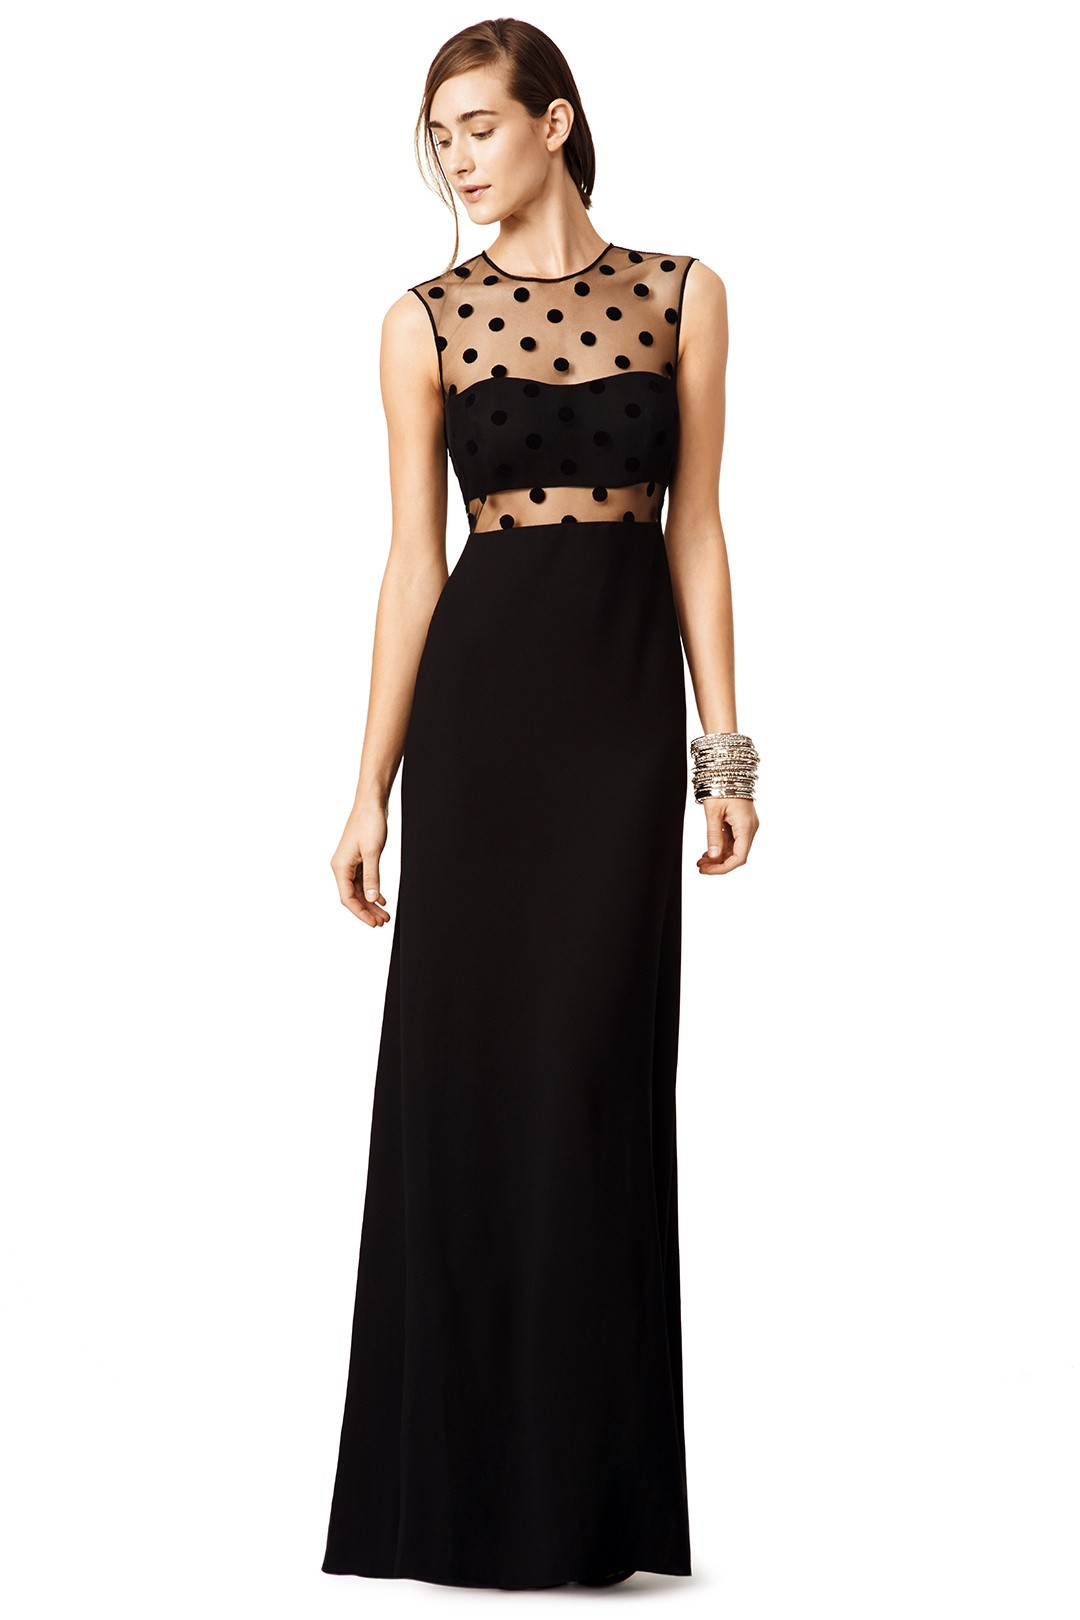 Black dress guest wedding - Jill Jill Stuart